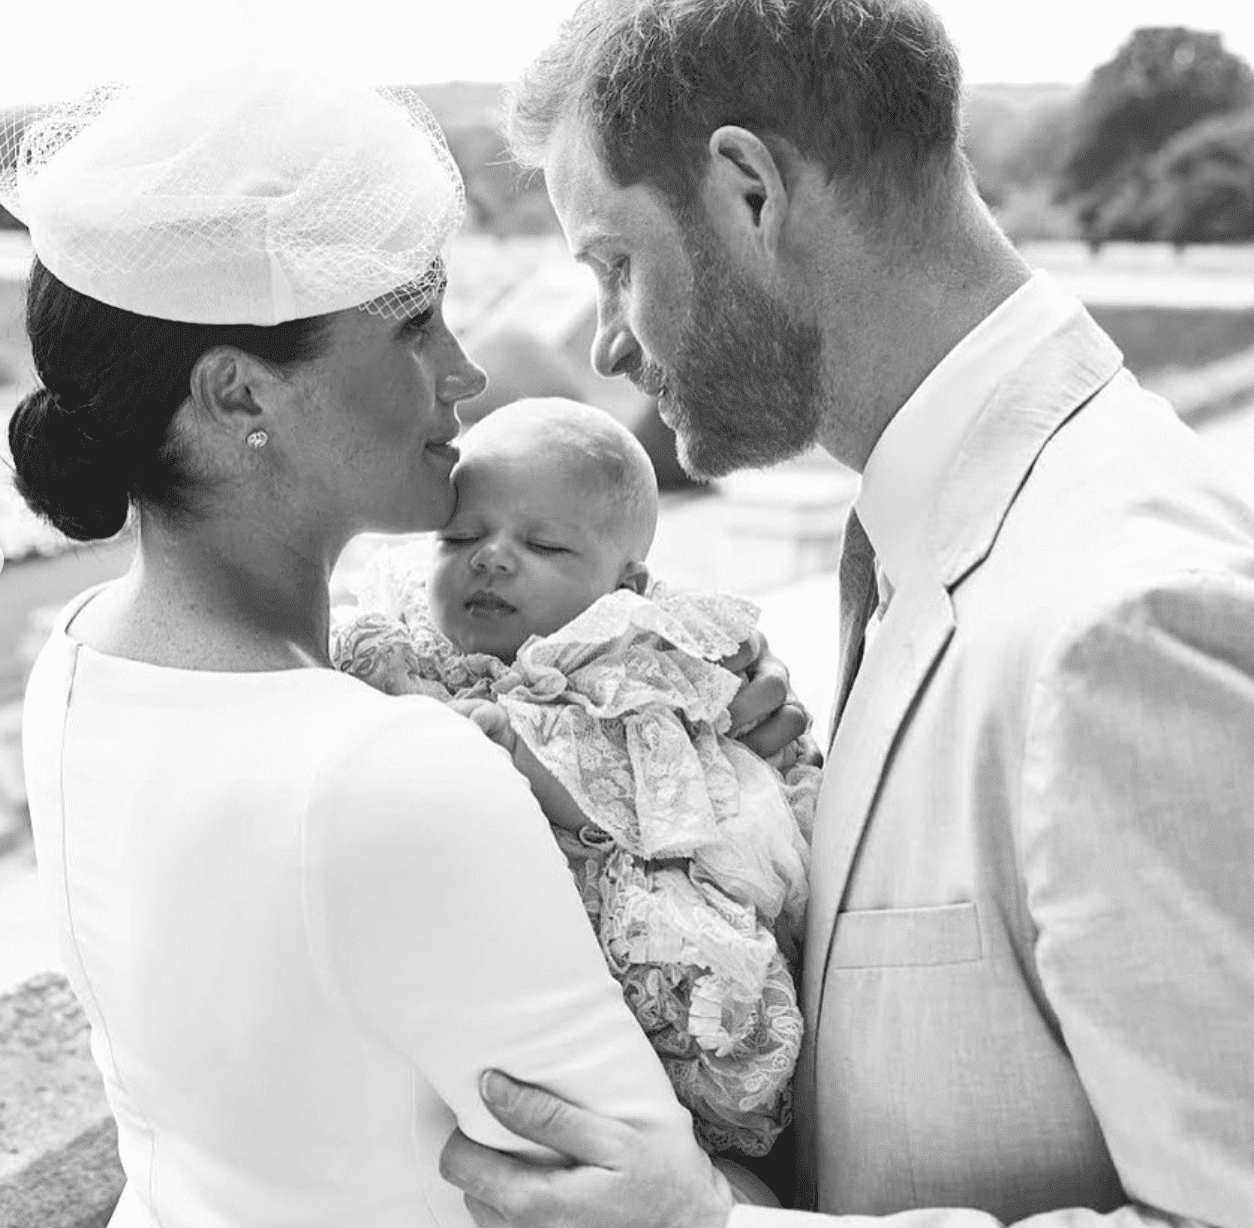 Meghan and Harry embrace their first-born son Archie on the day of his christening. | Source: Instagram/SusseRoyal